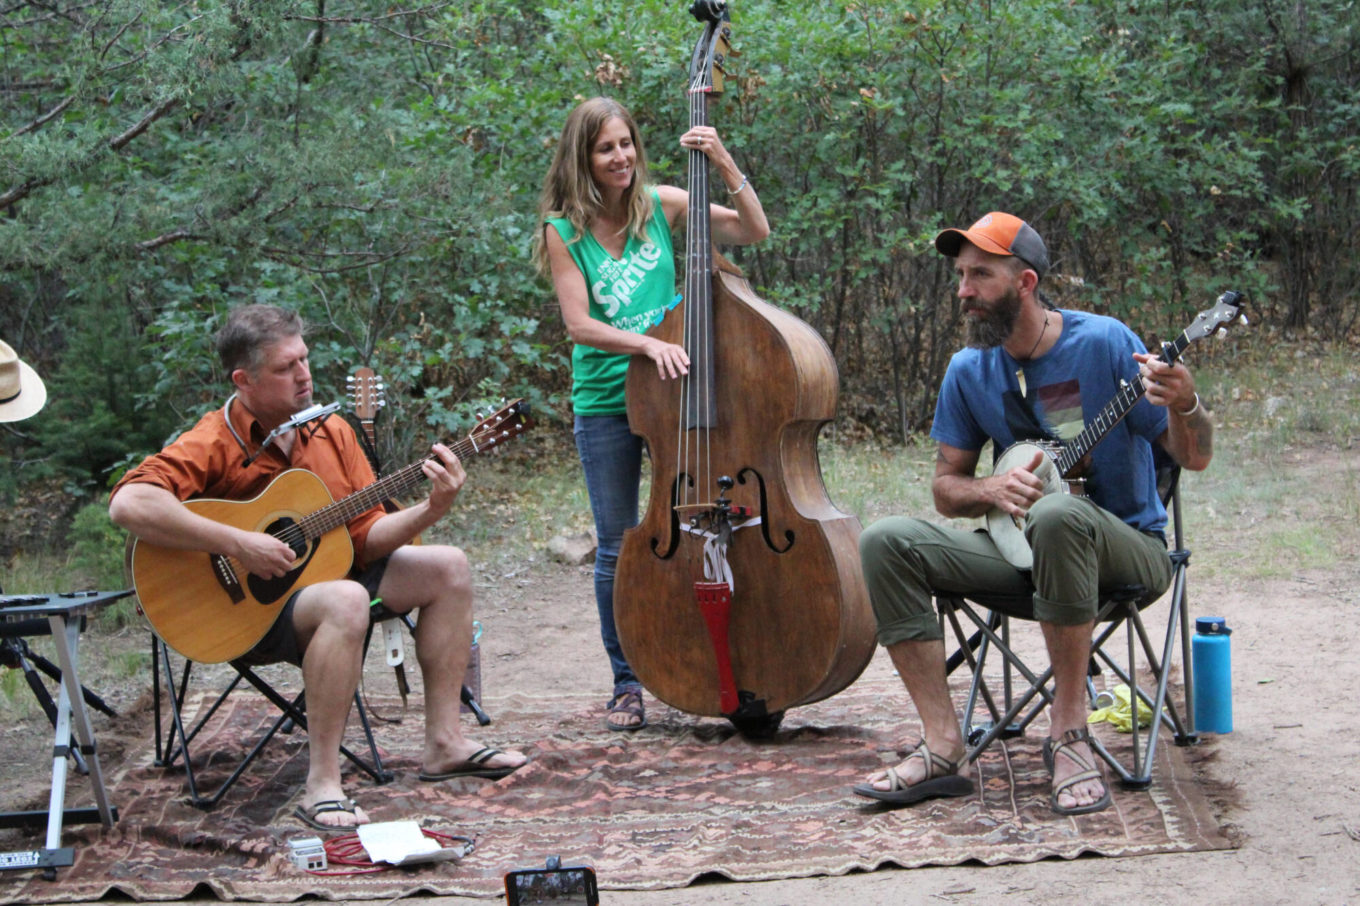 Local musicians playing during a rio chama music trip